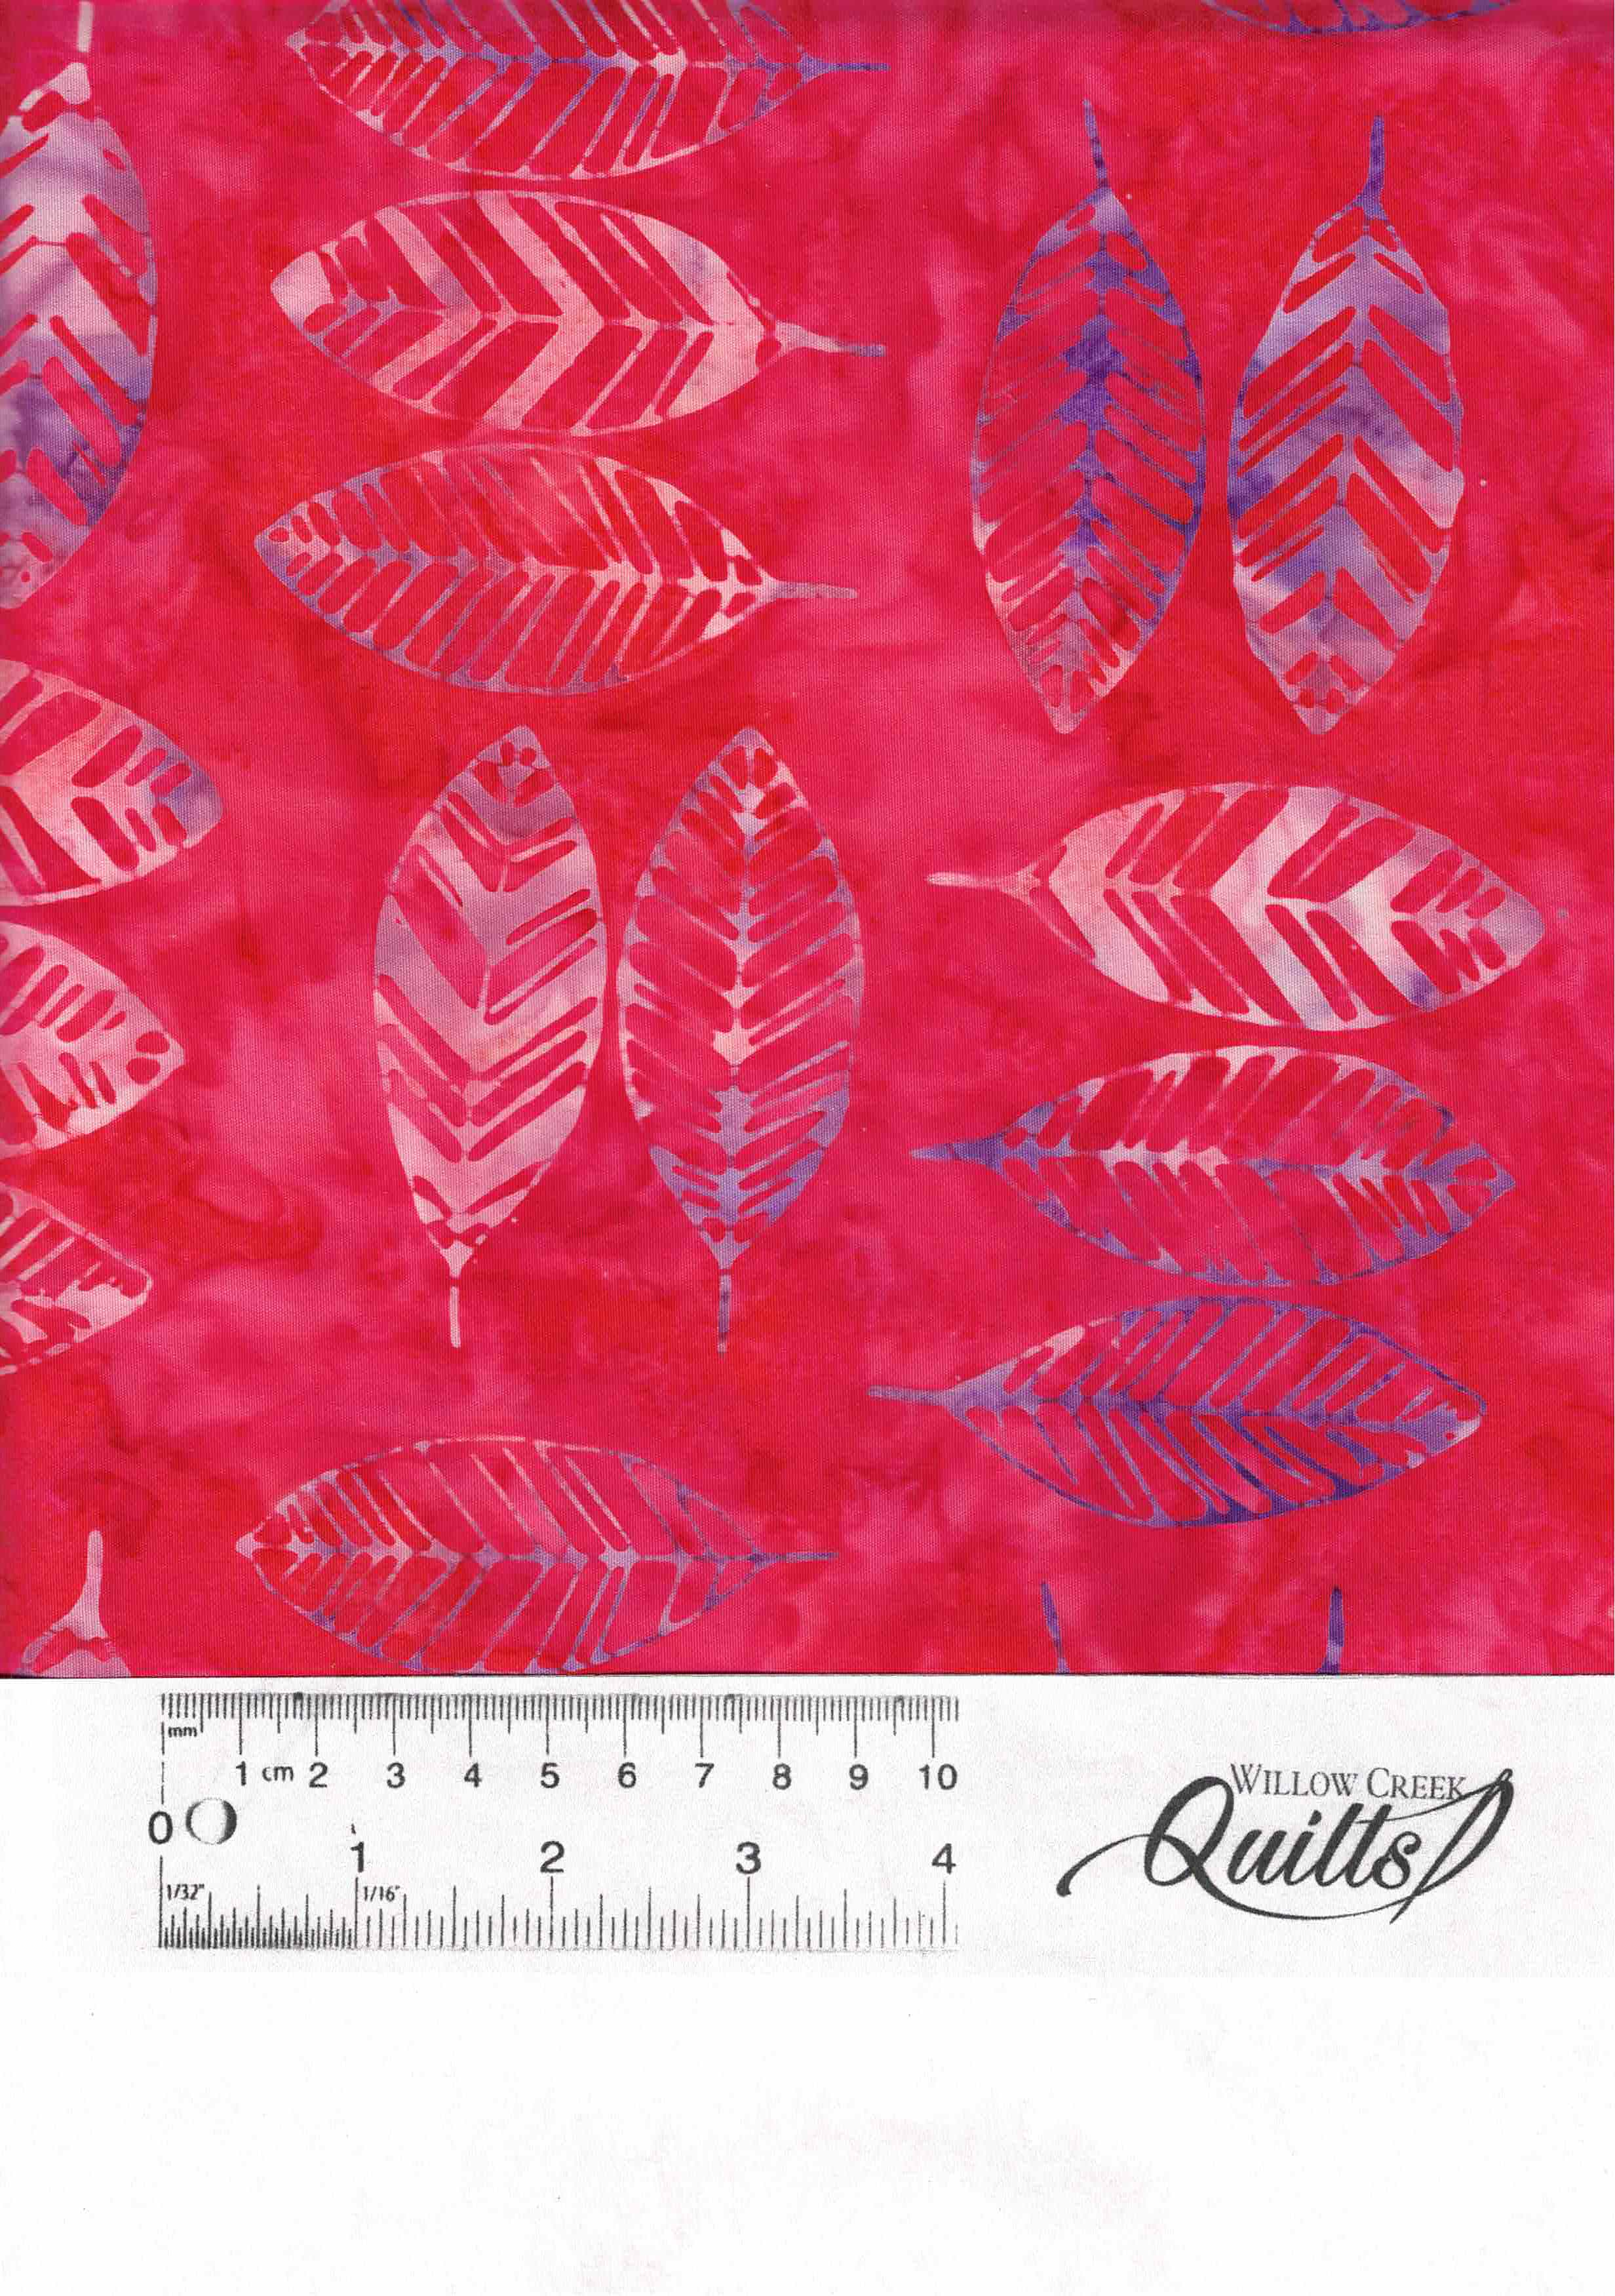 Anthology Batik - AN-5131-4Q03 - 36801495